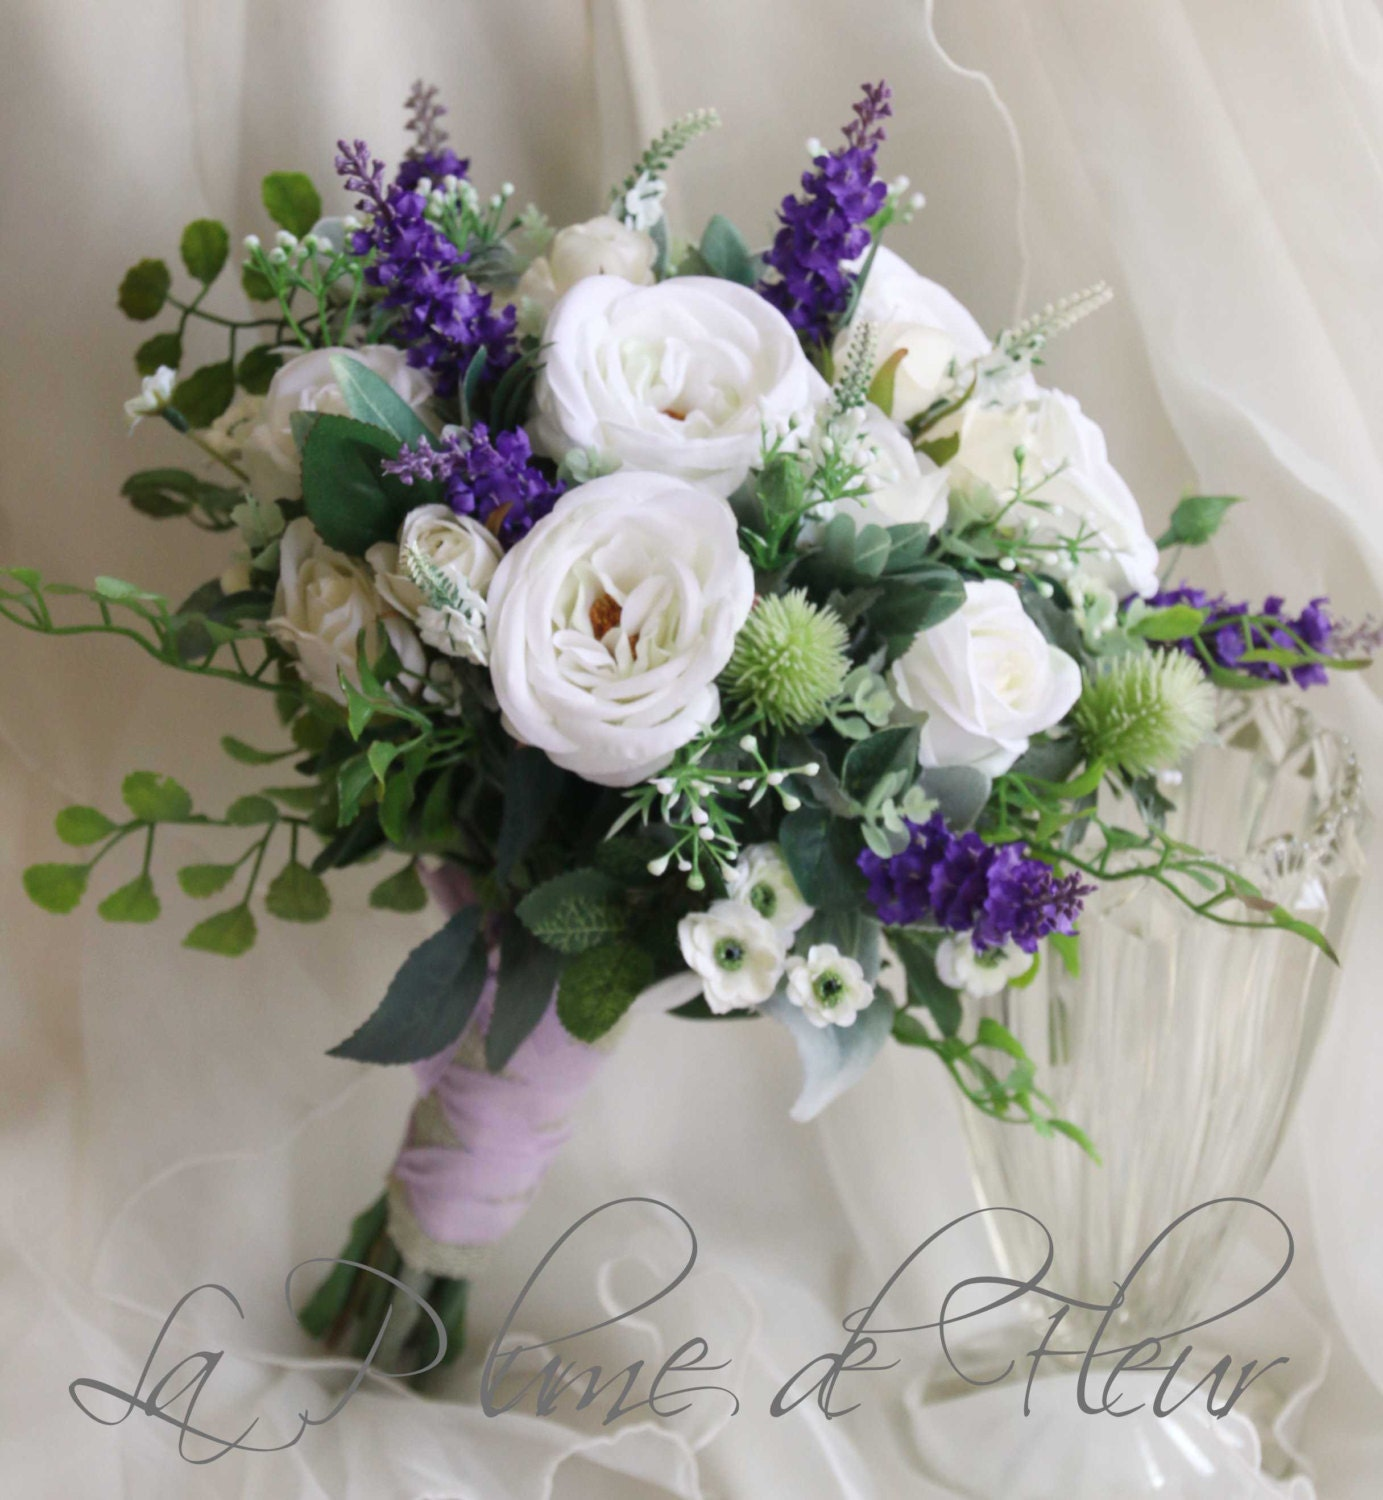 How To Make Your Own Bridal Bouquet With Fake Flowers Choice Image ...